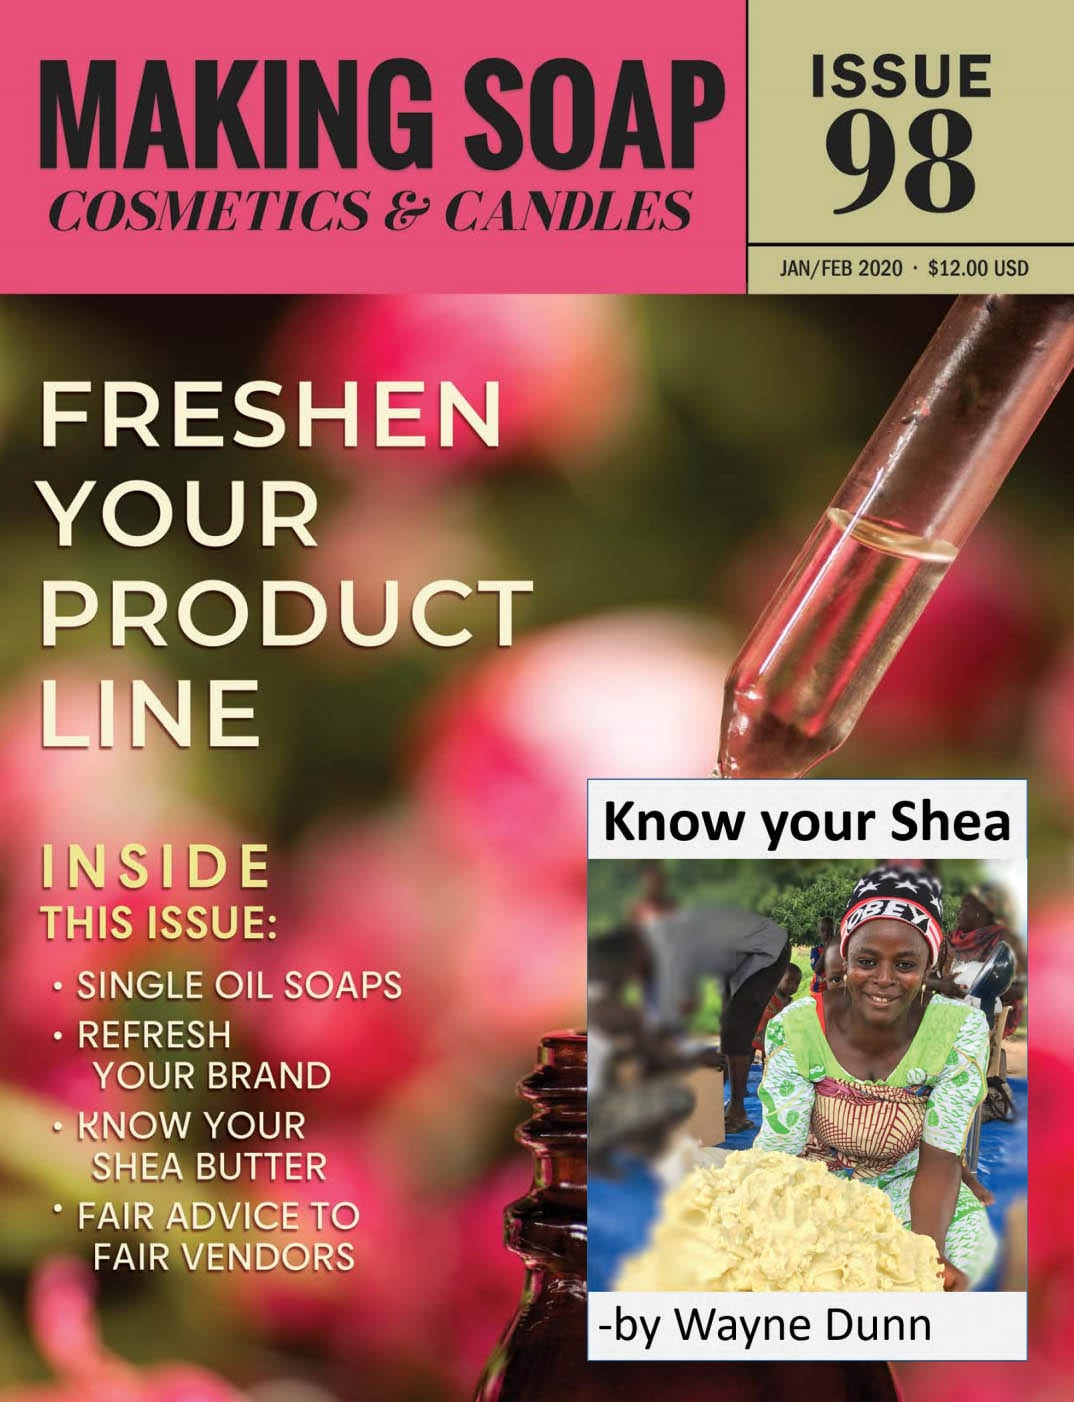 Know Your Shea